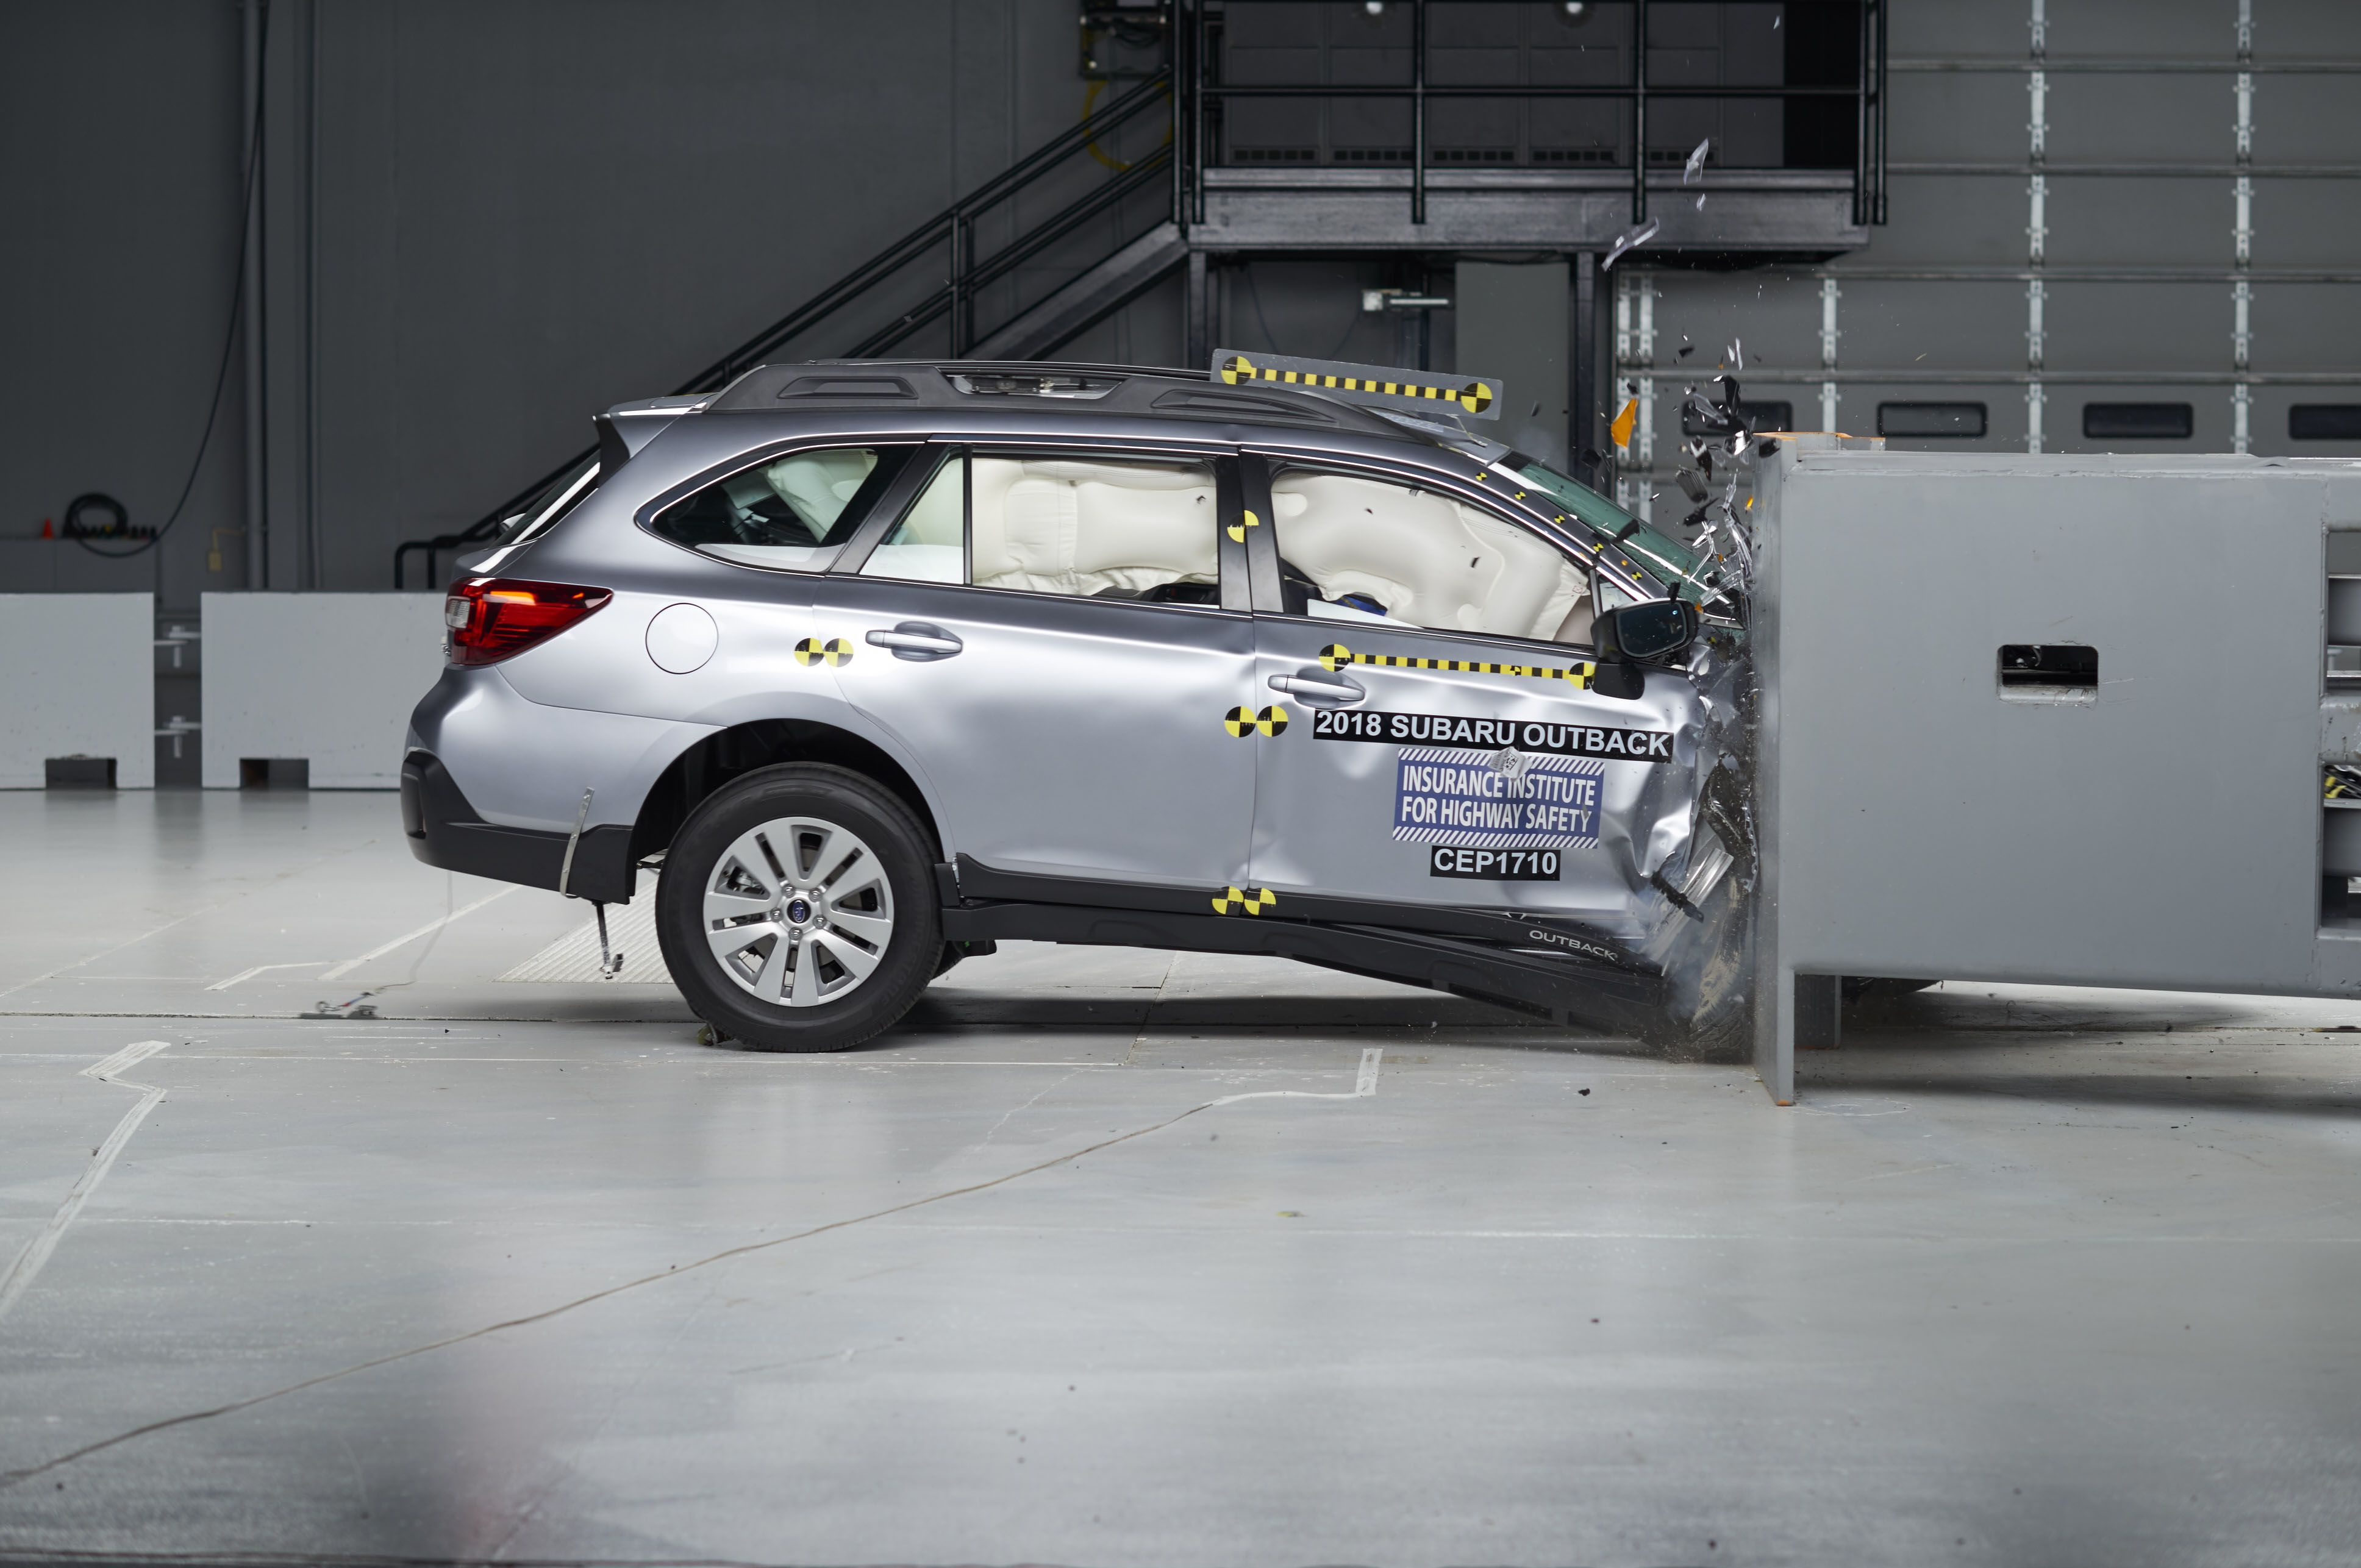 Iihs Throws Another Hurdle At Automakers The Passenger Side Small